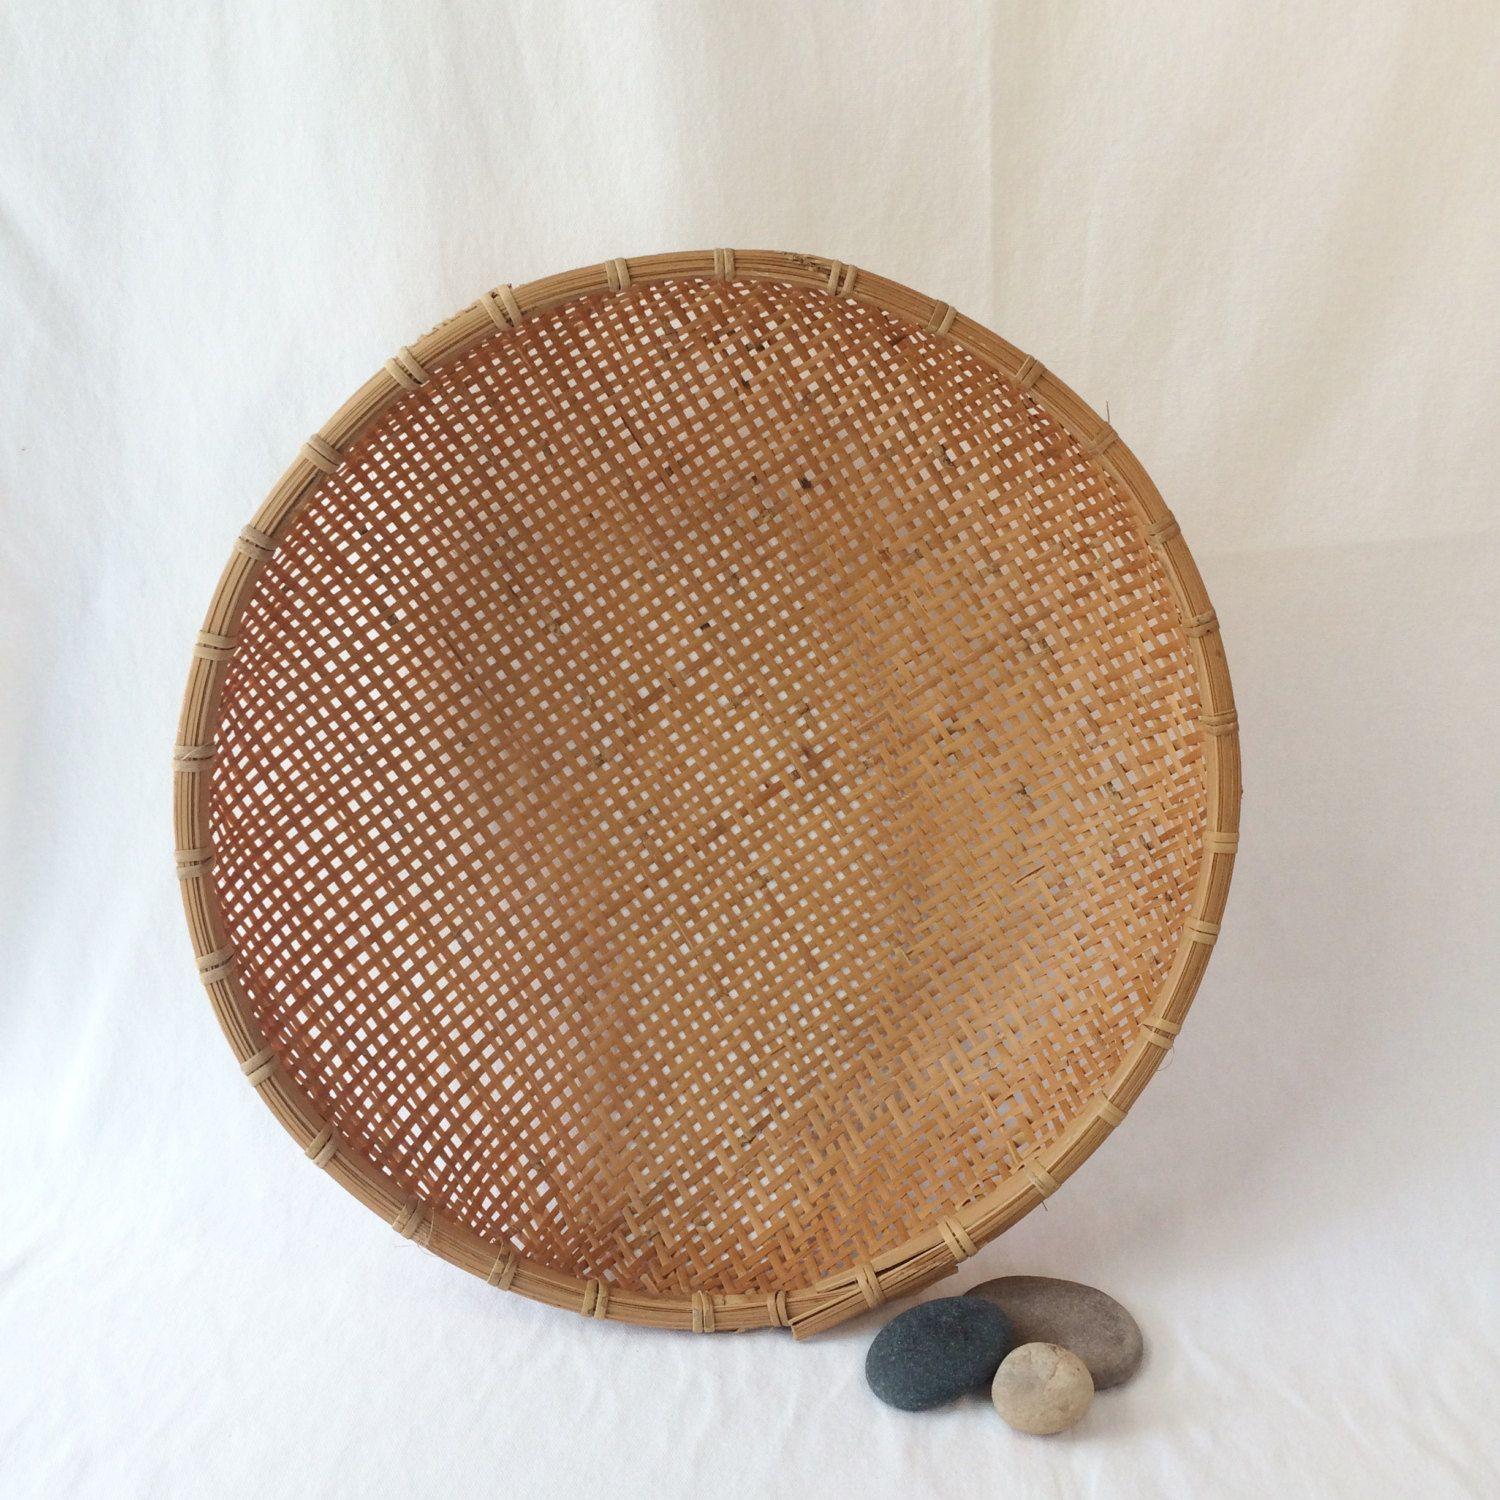 Vintage bamboo rattan basket boho wall decor by pebblecreekgoods vintage round rattan basket large wall basket large rattan wall decor round bamboo amipublicfo Choice Image